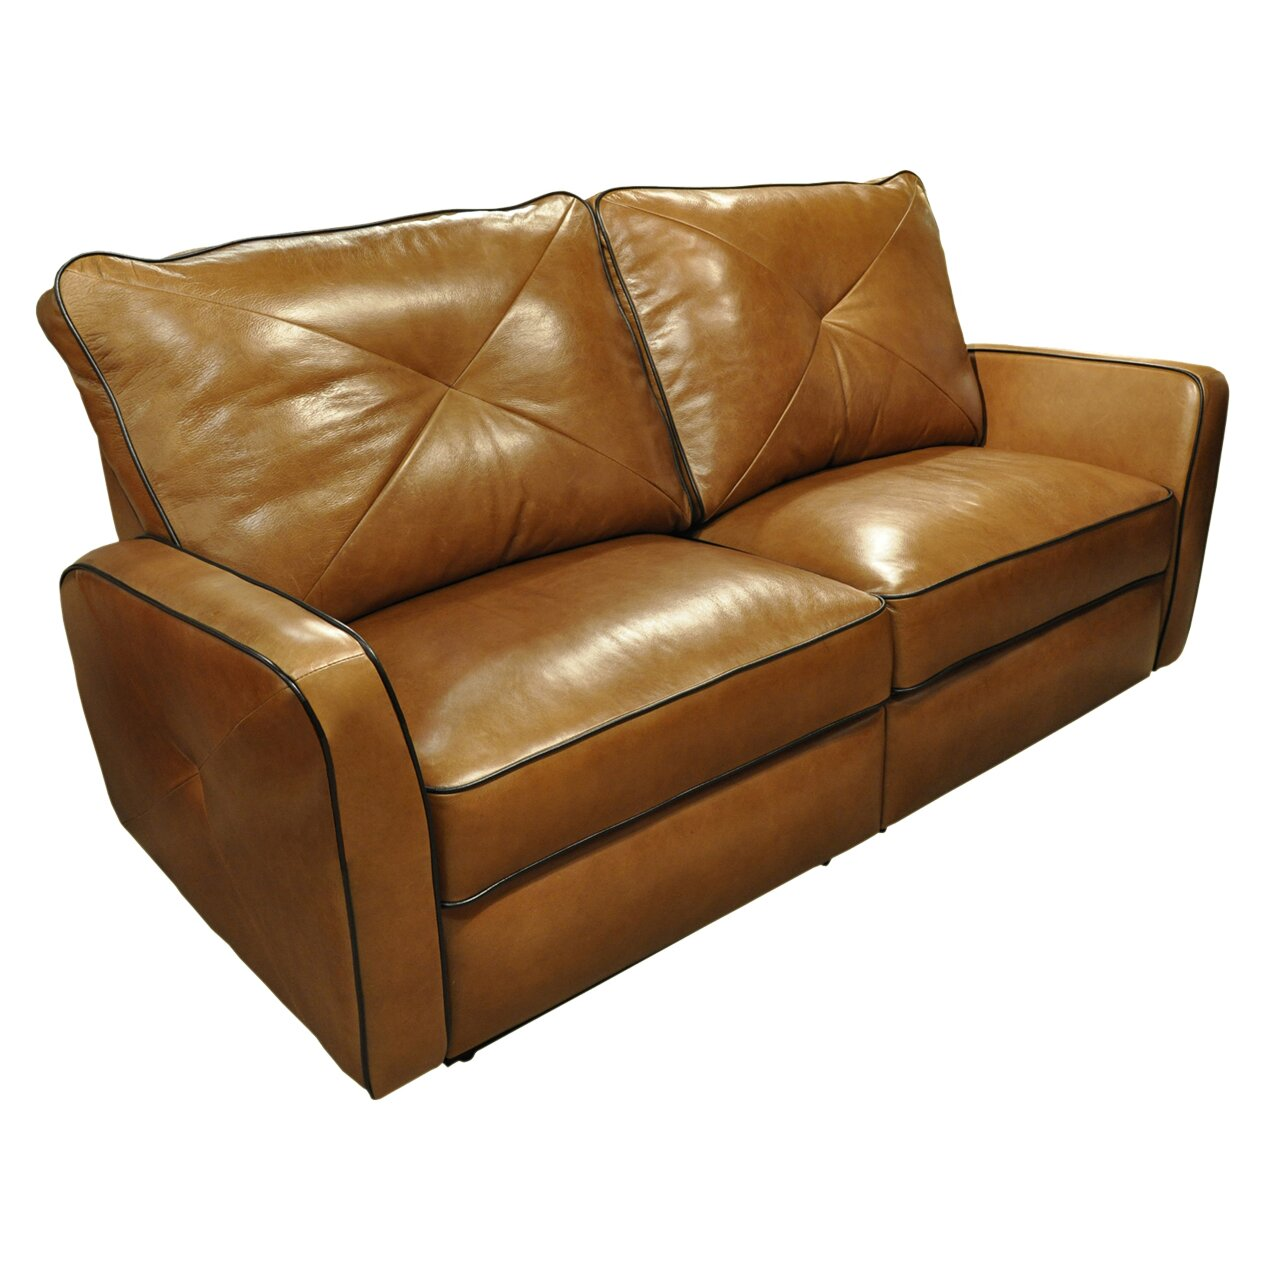 Omnia leather bahama leather reclining loveseat reviews wayfair Loveseats that recline